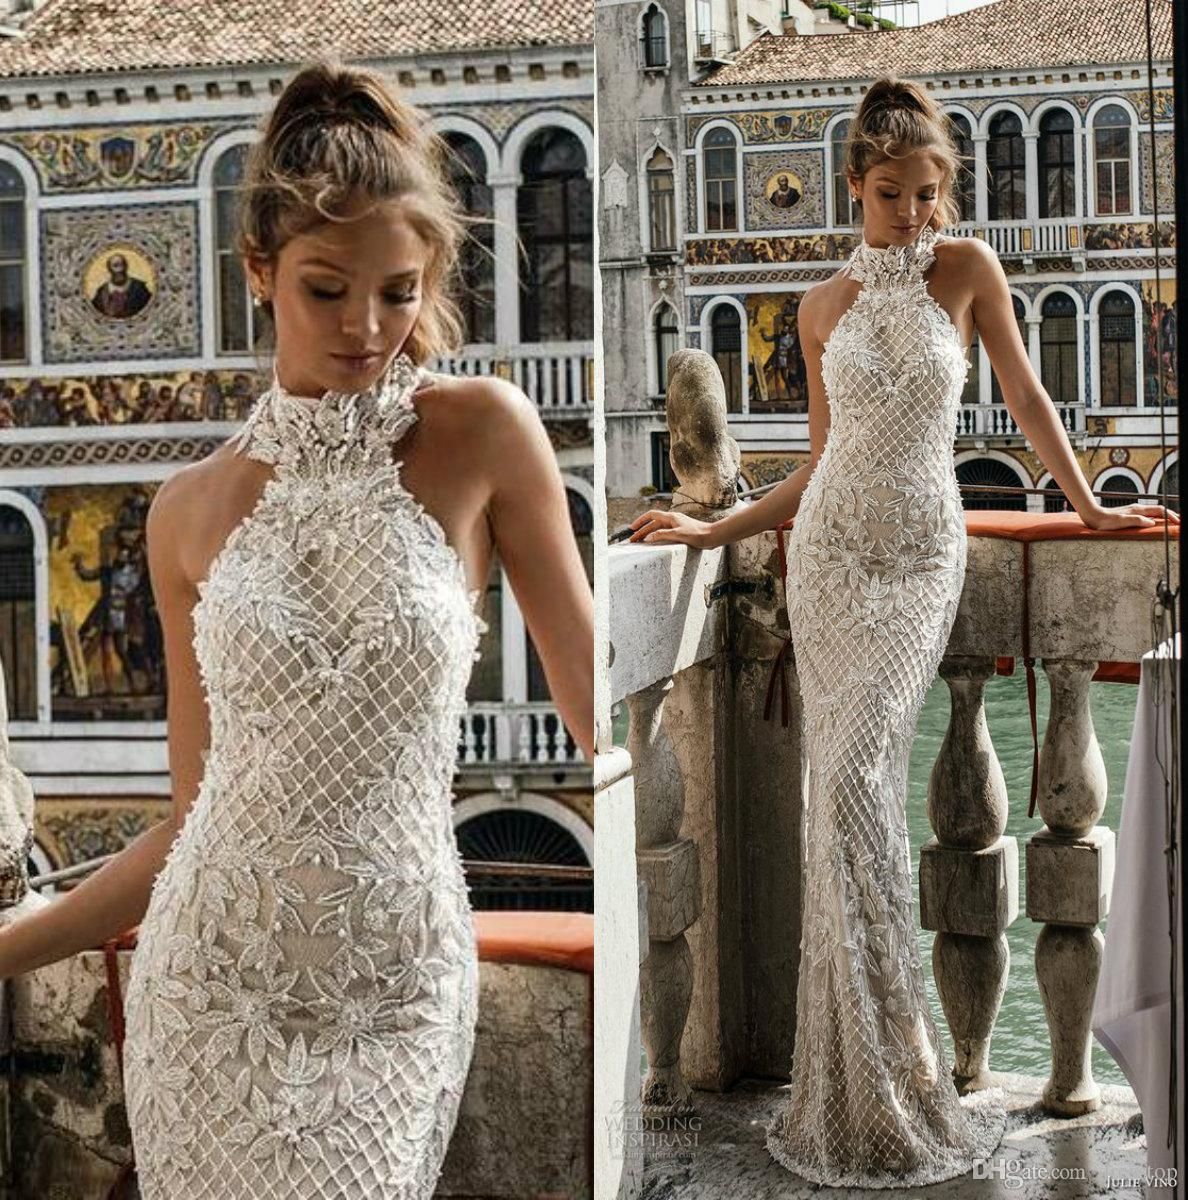 b12a234790 Julie Vino Spring 2018 Mermaid Wedding Dresses Halter Neck Lace Bridal  Gowns With Beads Floor Length Appliques Beach Wedding Dress Wedding Dress  Shops ...